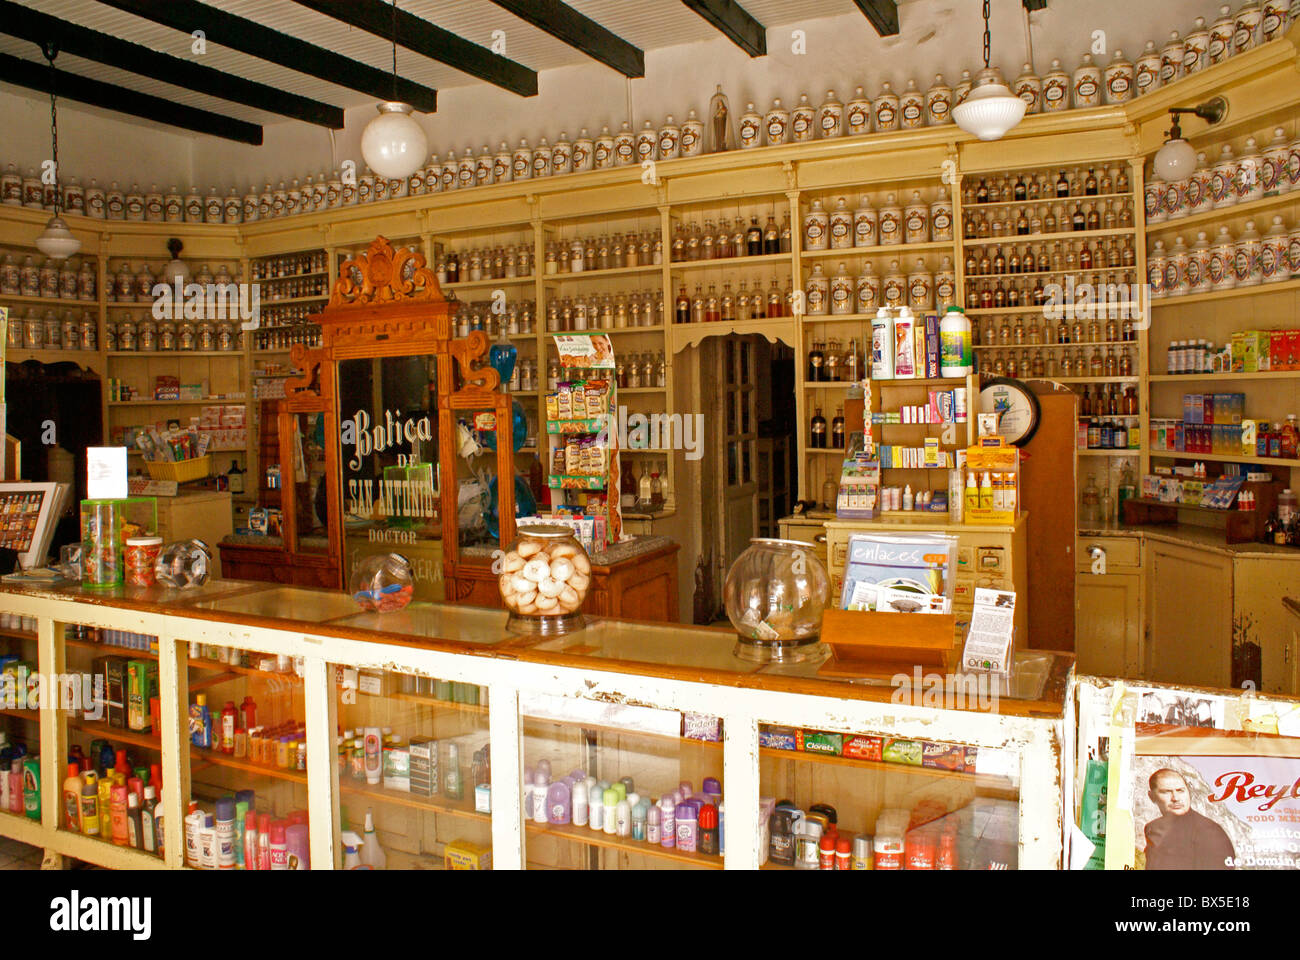 Traditional pharmacy and apothecary shop in San Miguel de Allende, Guanajuato, Mexico - Stock Image